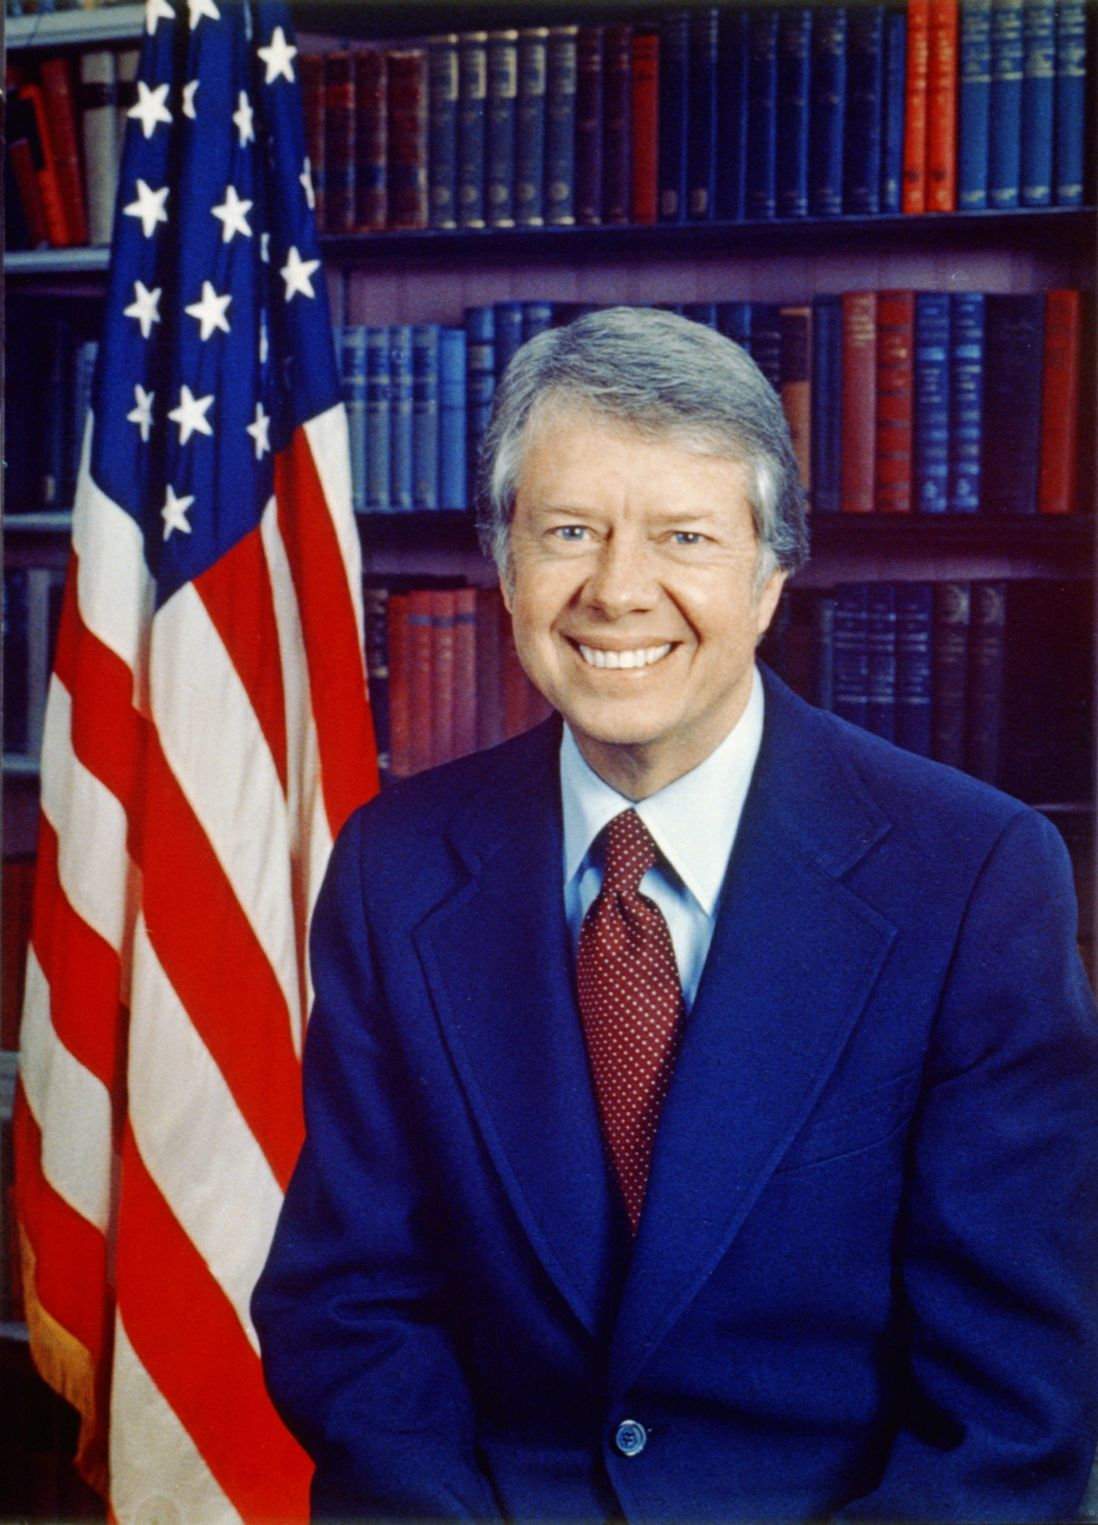 a biography of jimmy carter 39th president of the united states of america James earl jimmy carter, jr (born october 1, 1924) was the 39th president of the united stateshe served from 1977 to 1981 he is a member of the democratic party .